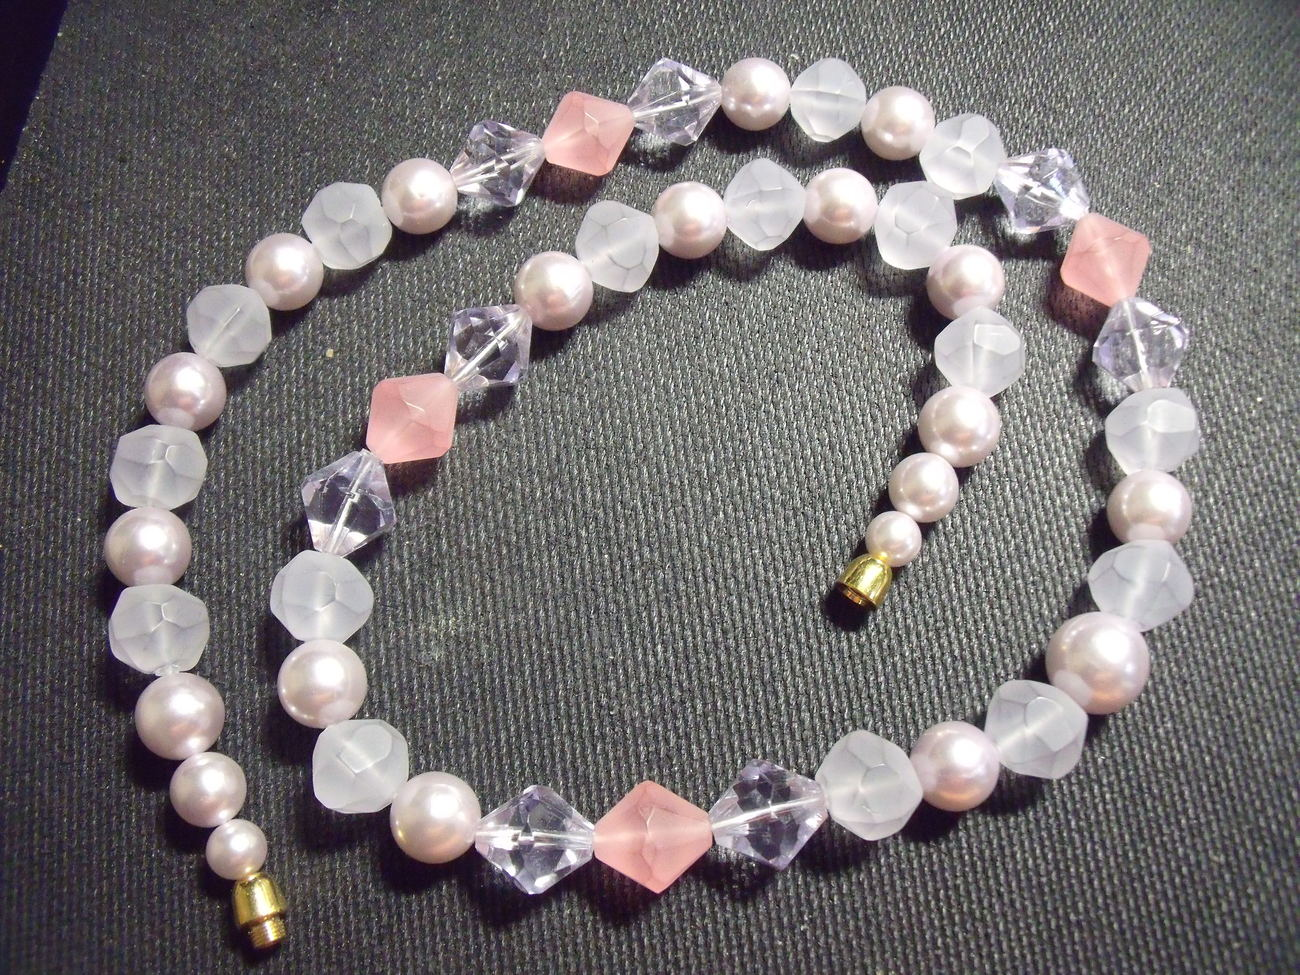 Interesting Multi faceted bead necklace